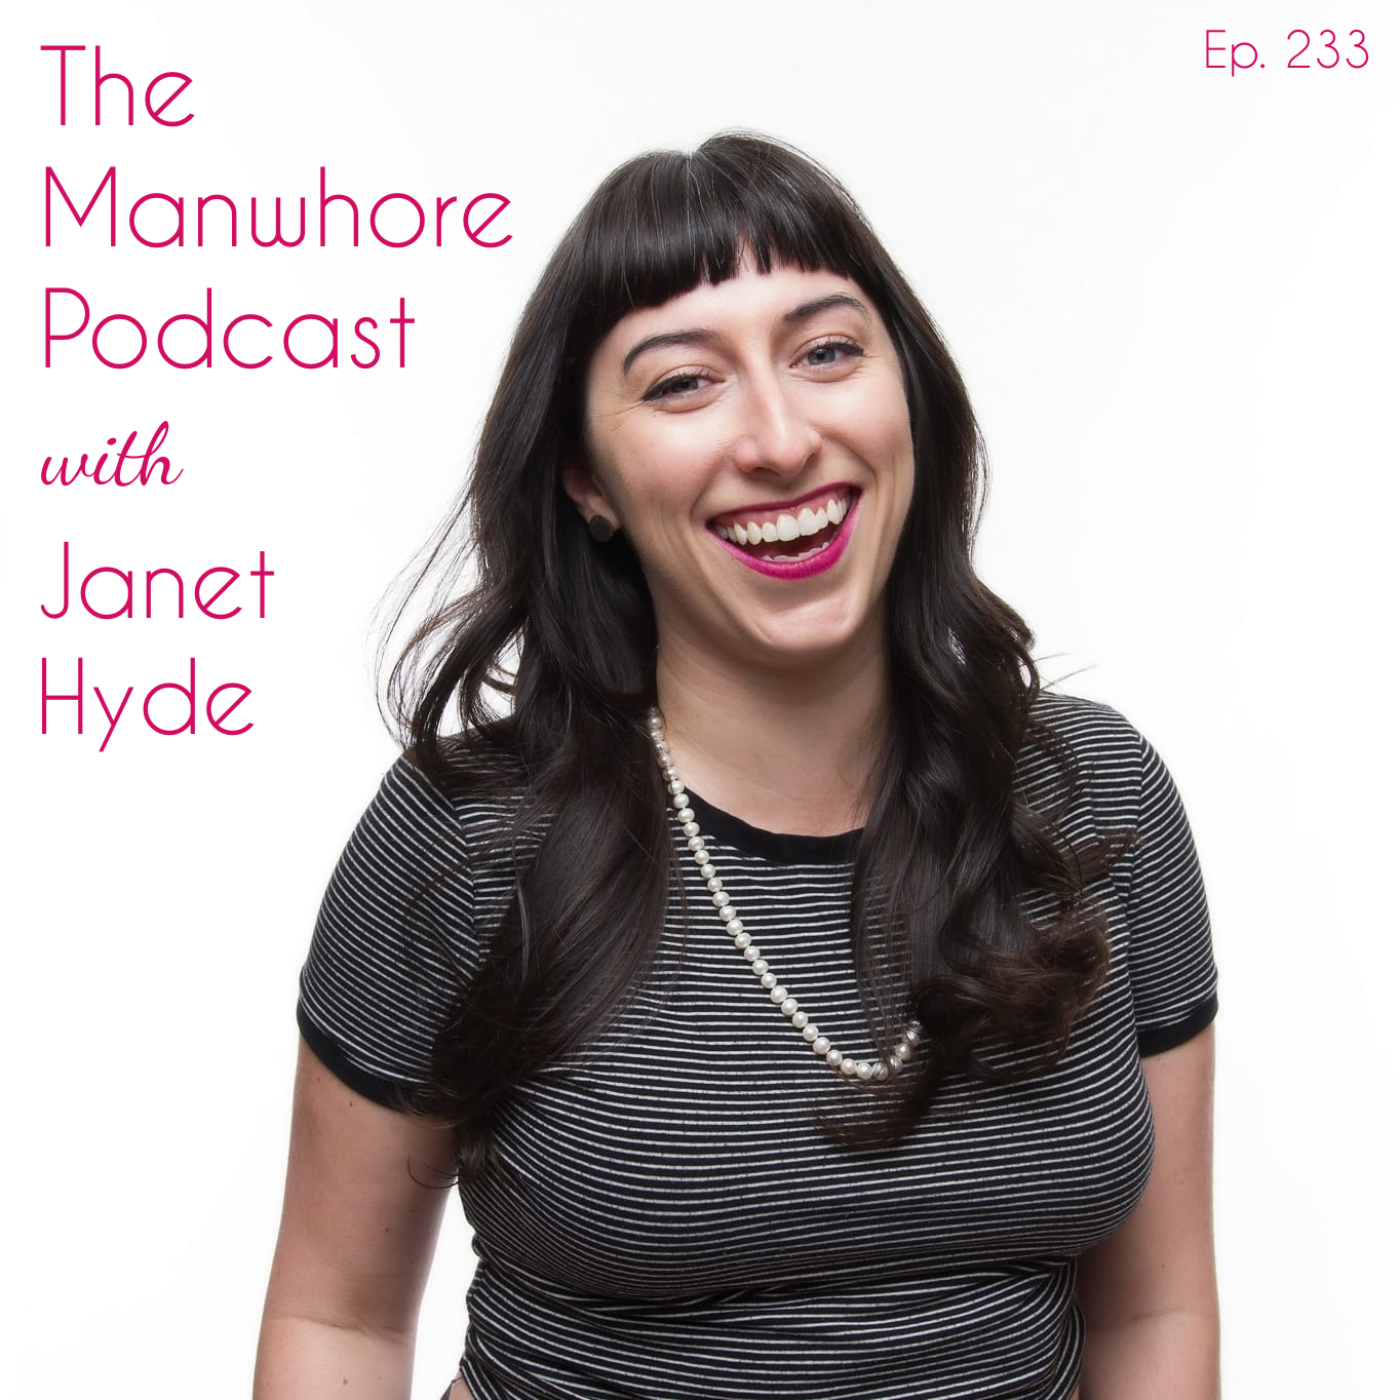 The Manwhore Podcast: A Sex-Positive Quest - Ep. 233: The Last Monogamous Millennial in New York (comedian Janet Hyde)